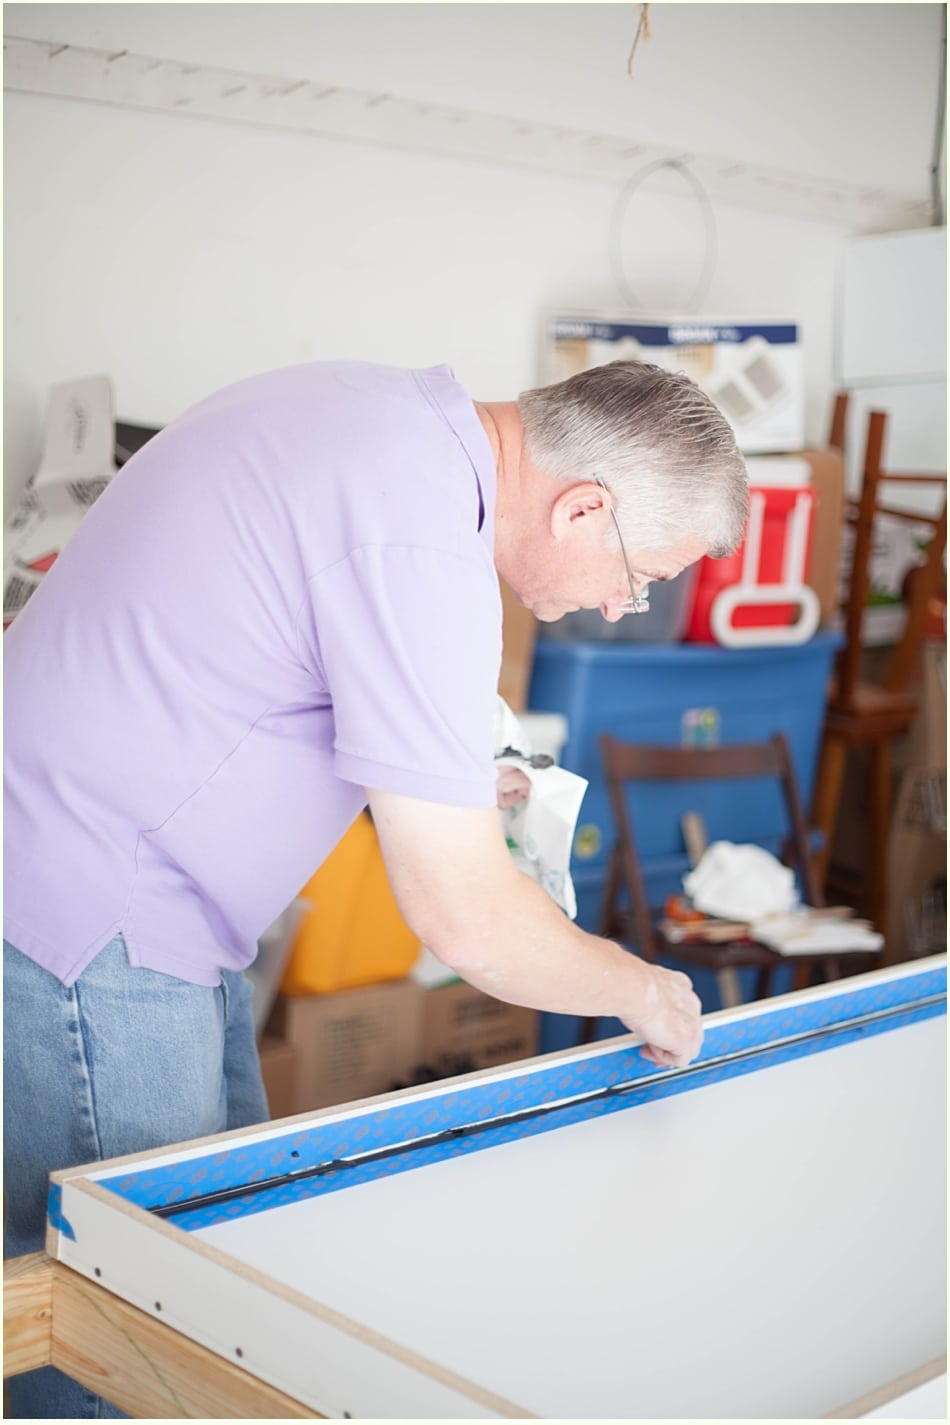 Applying painter's tape to the edge of a countertop mold.